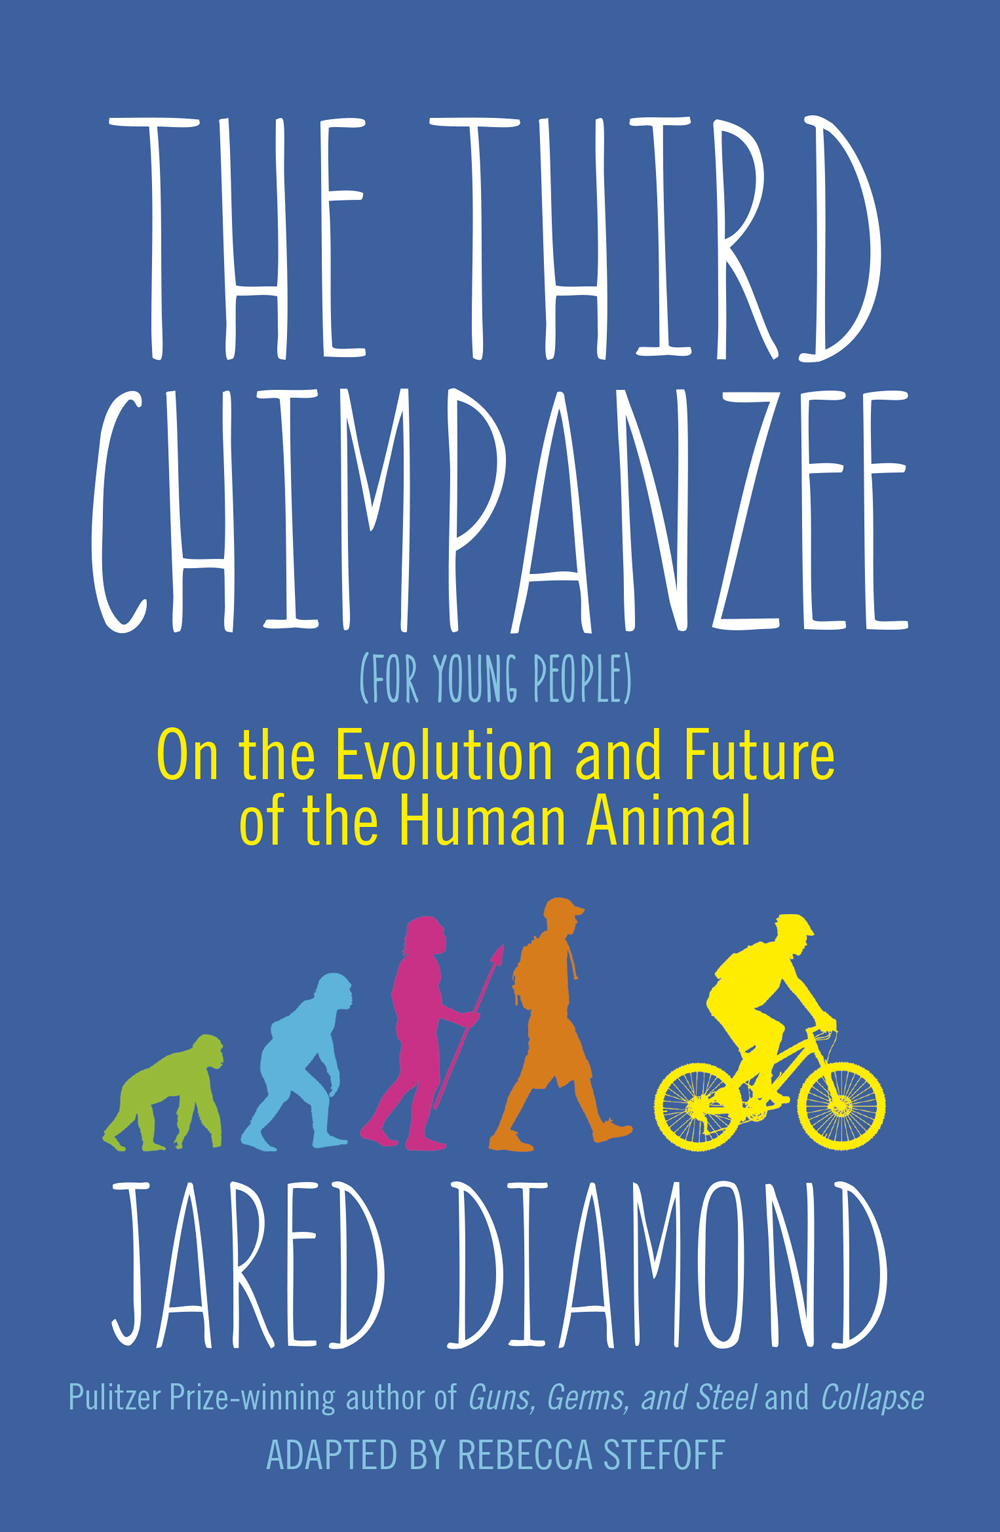 THE THIRD CHIMPANZEE (FOR YOUNG PEOPLE): ON THE EVOLUTION AND FUTURE OF THE HUMAN ANIMAL